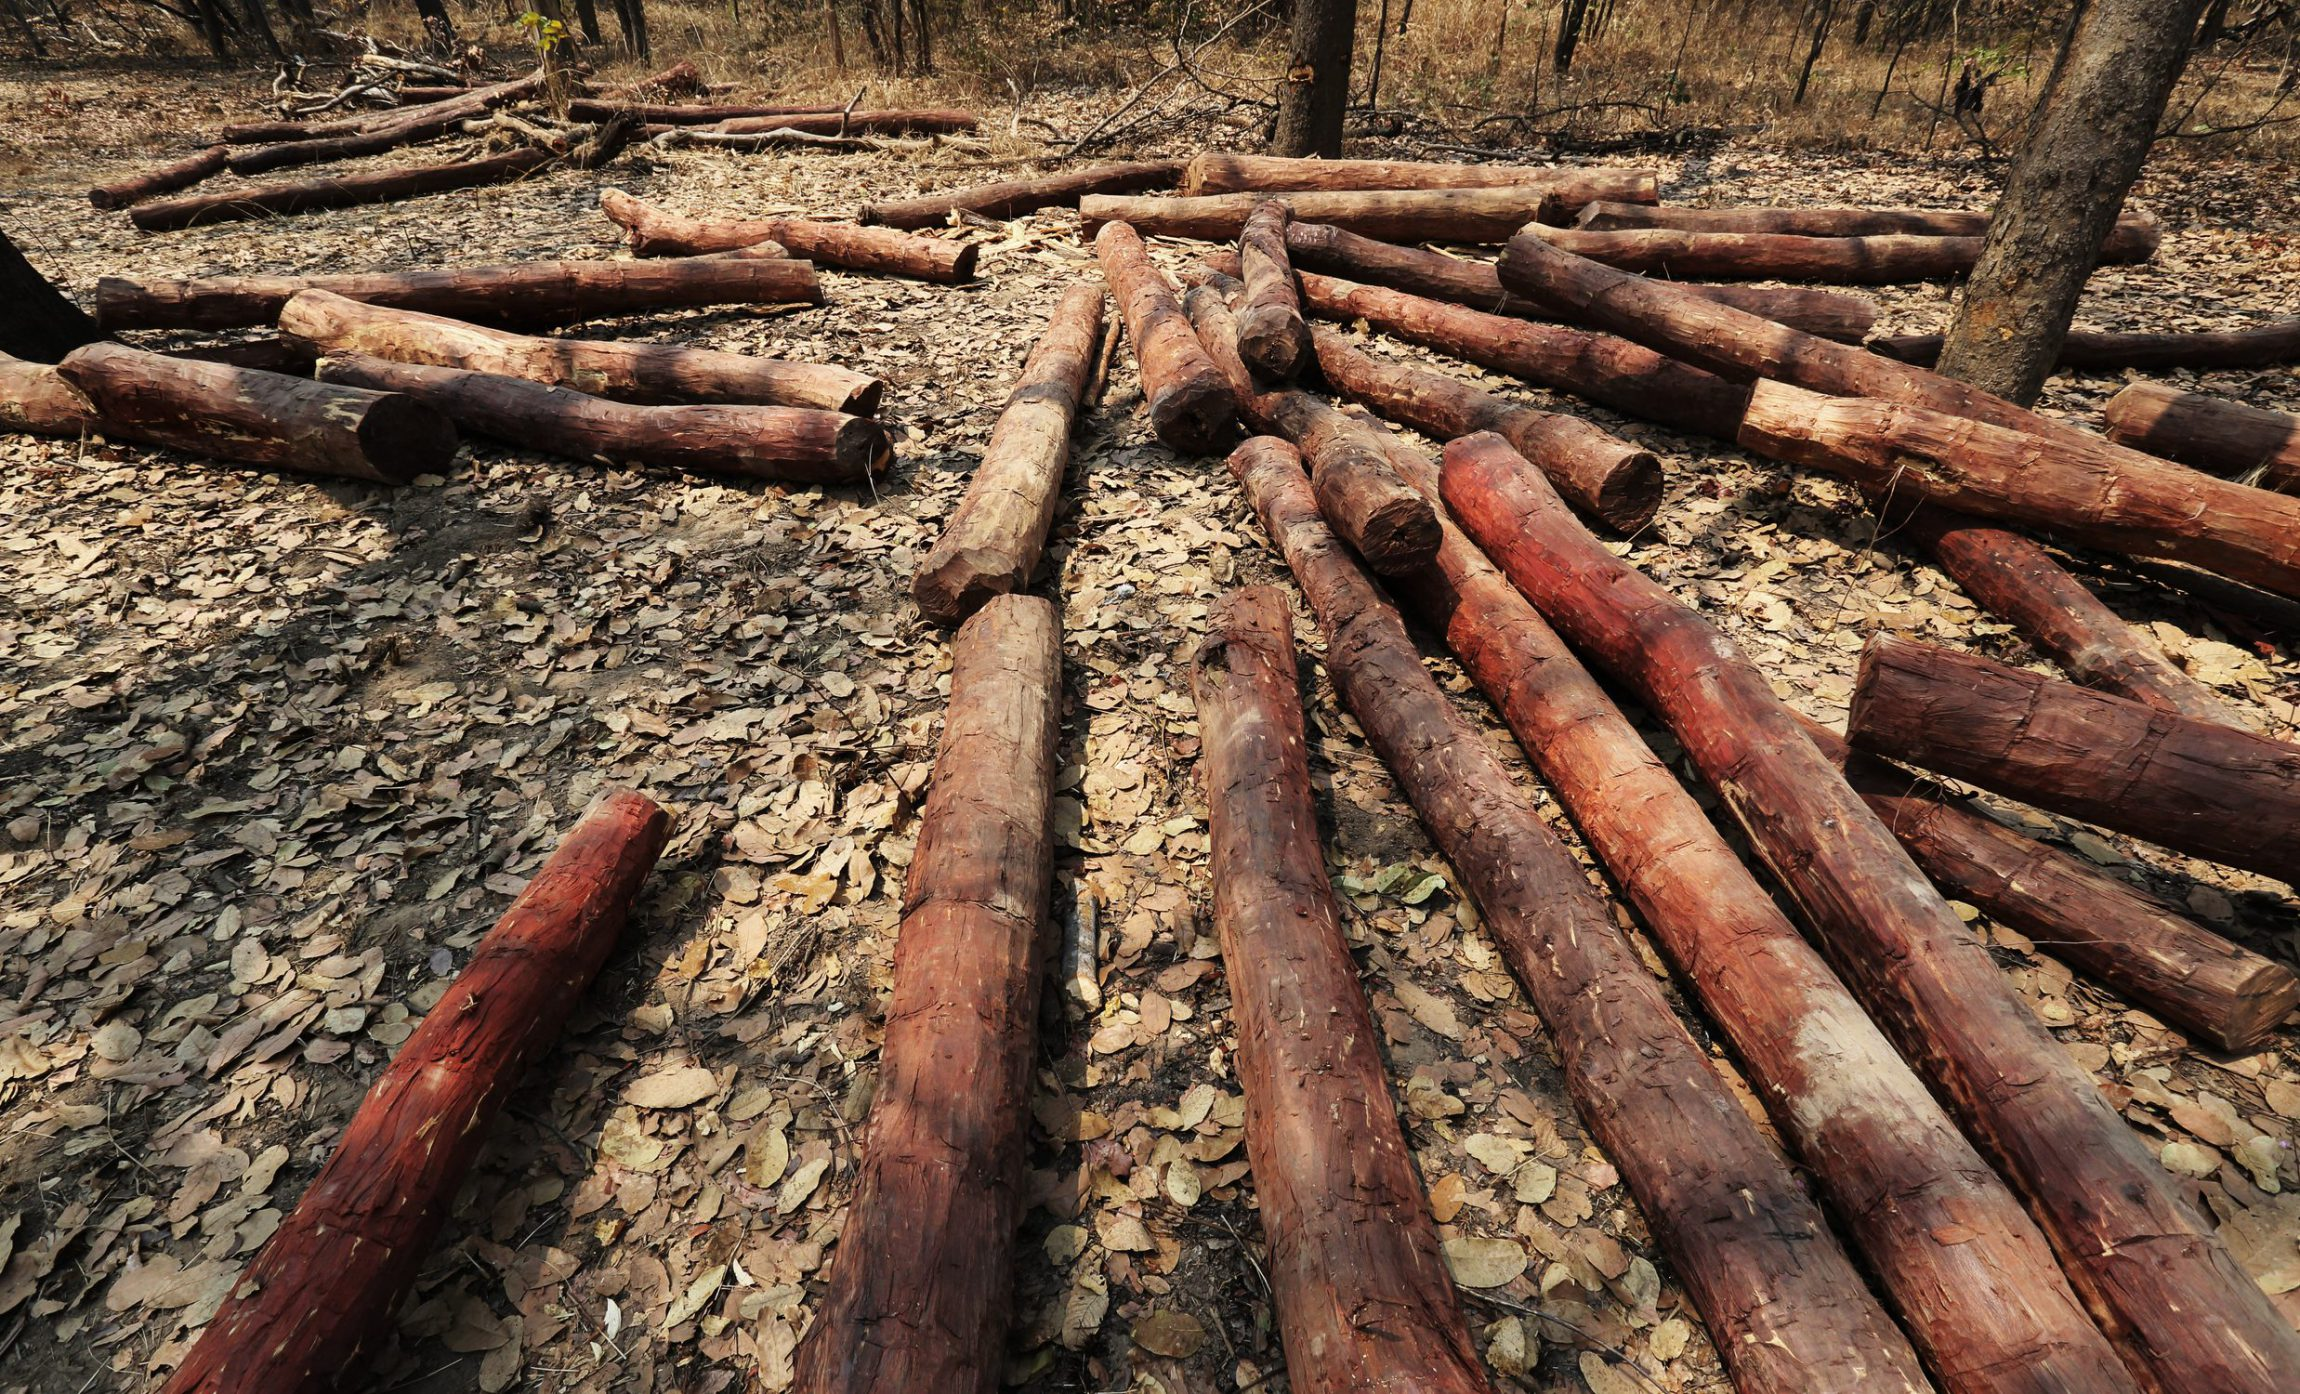 China rosewood furniture demand damages Gabon, Congo forests